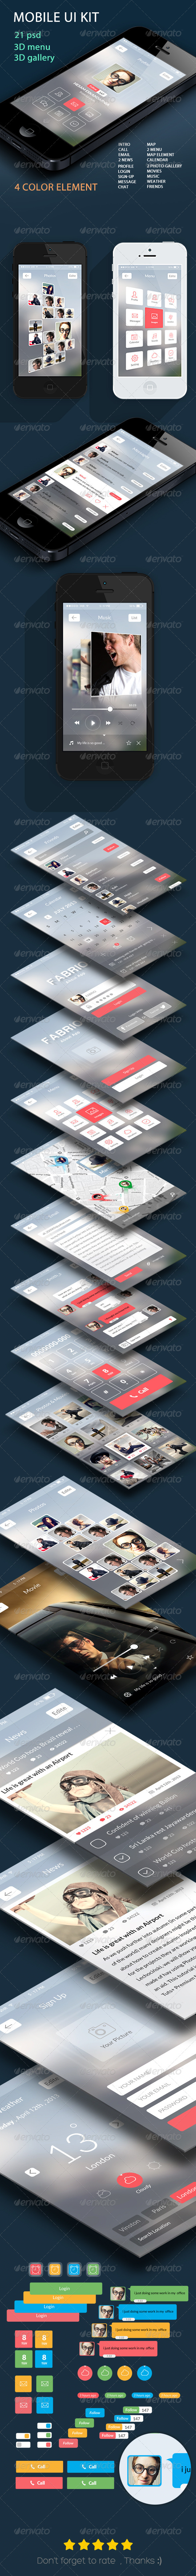 GraphicRiver Mobile UI KIT Flat 6280236